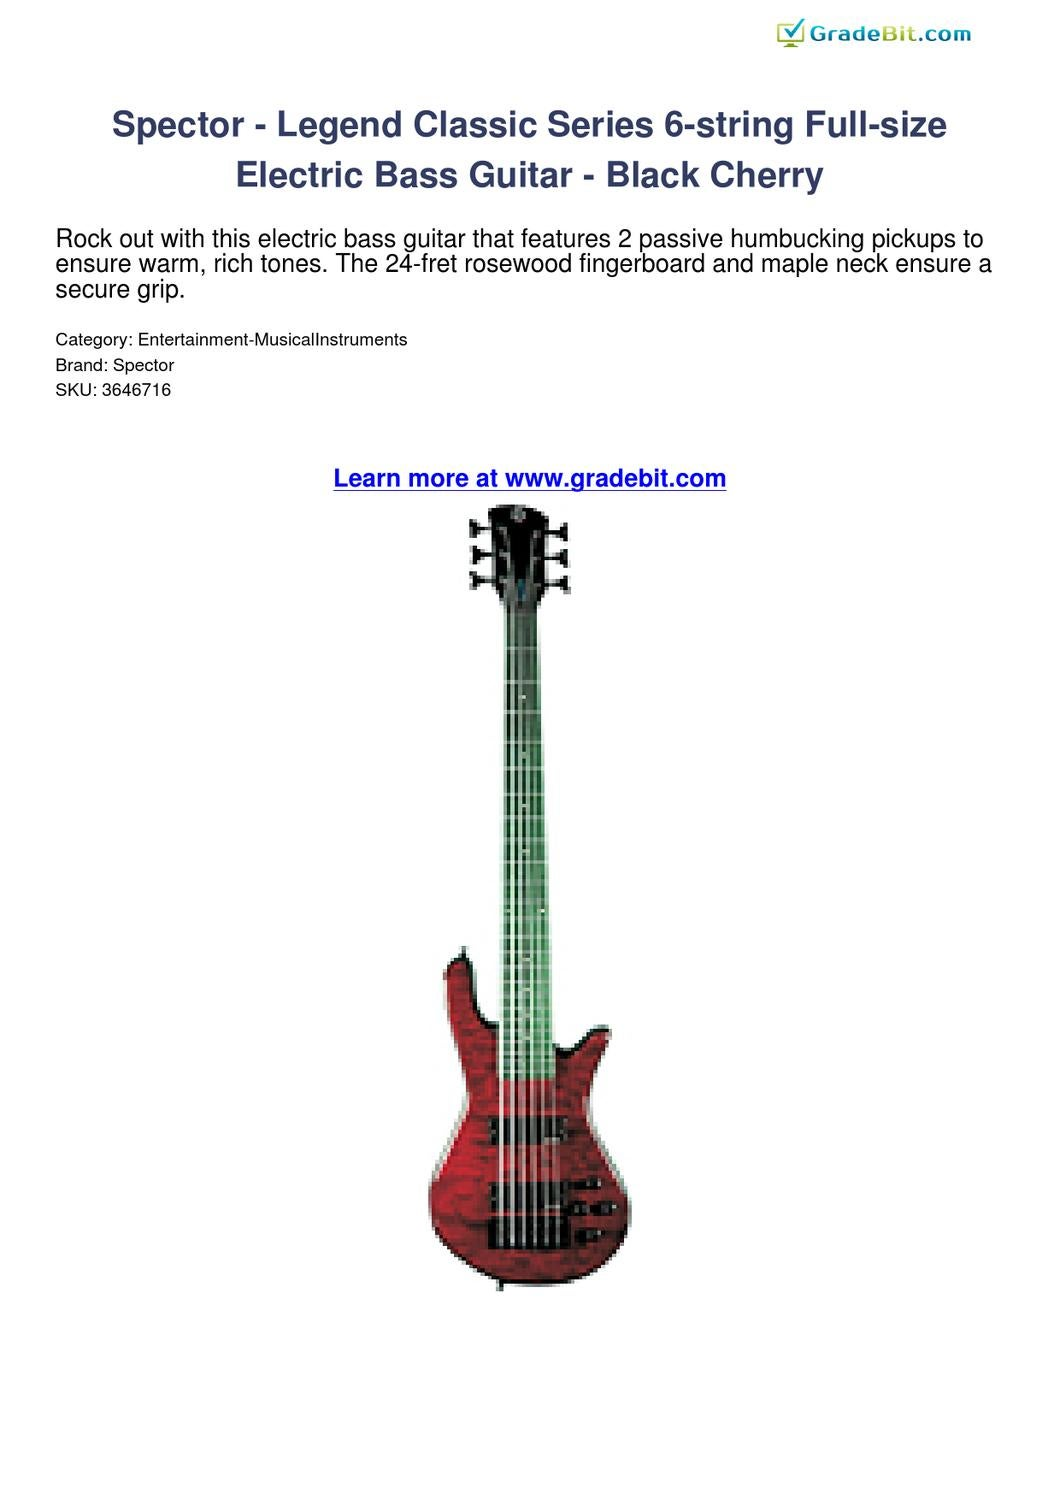 spector legend classic series 6 string full size electric bass guitar black cherry review by. Black Bedroom Furniture Sets. Home Design Ideas